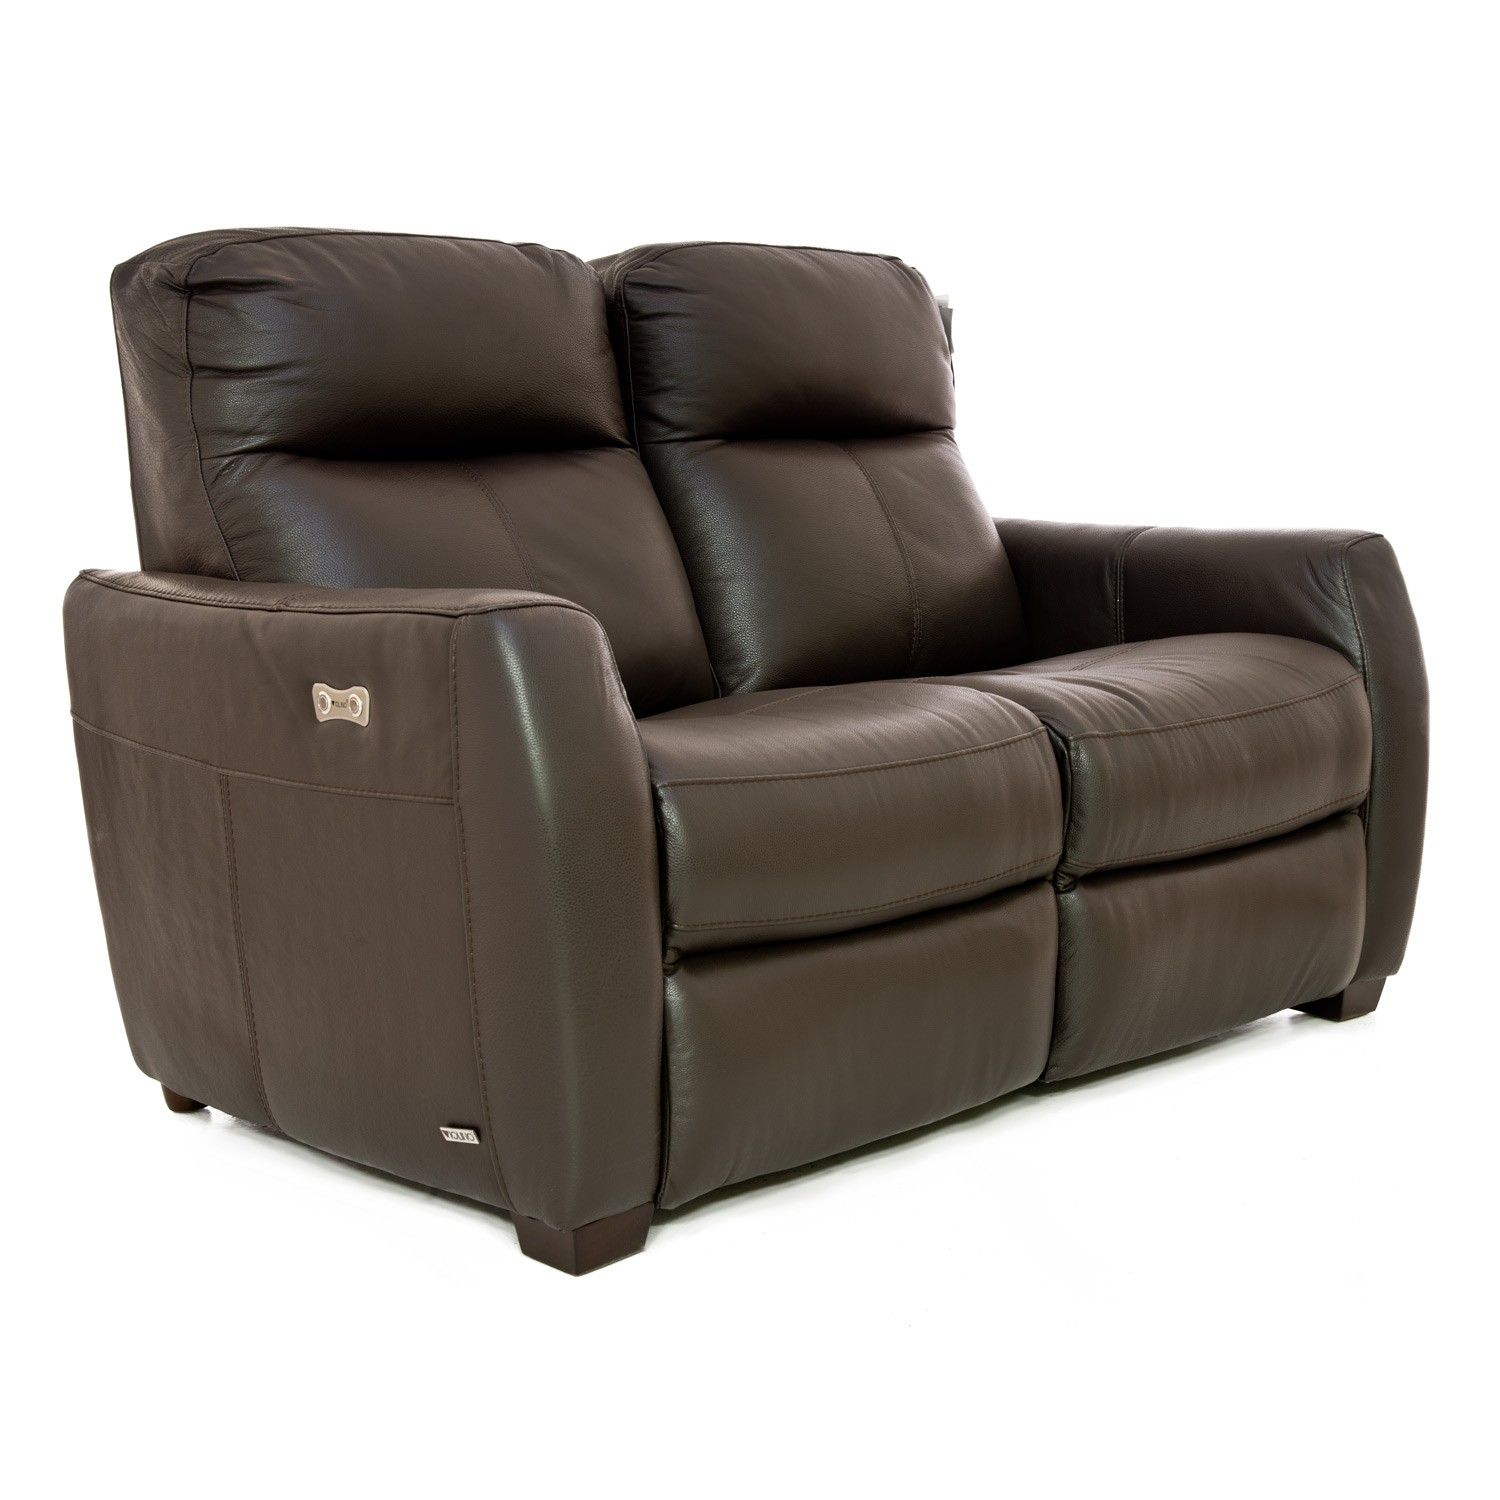 Fraser Two Seater Power Recliner Sofa